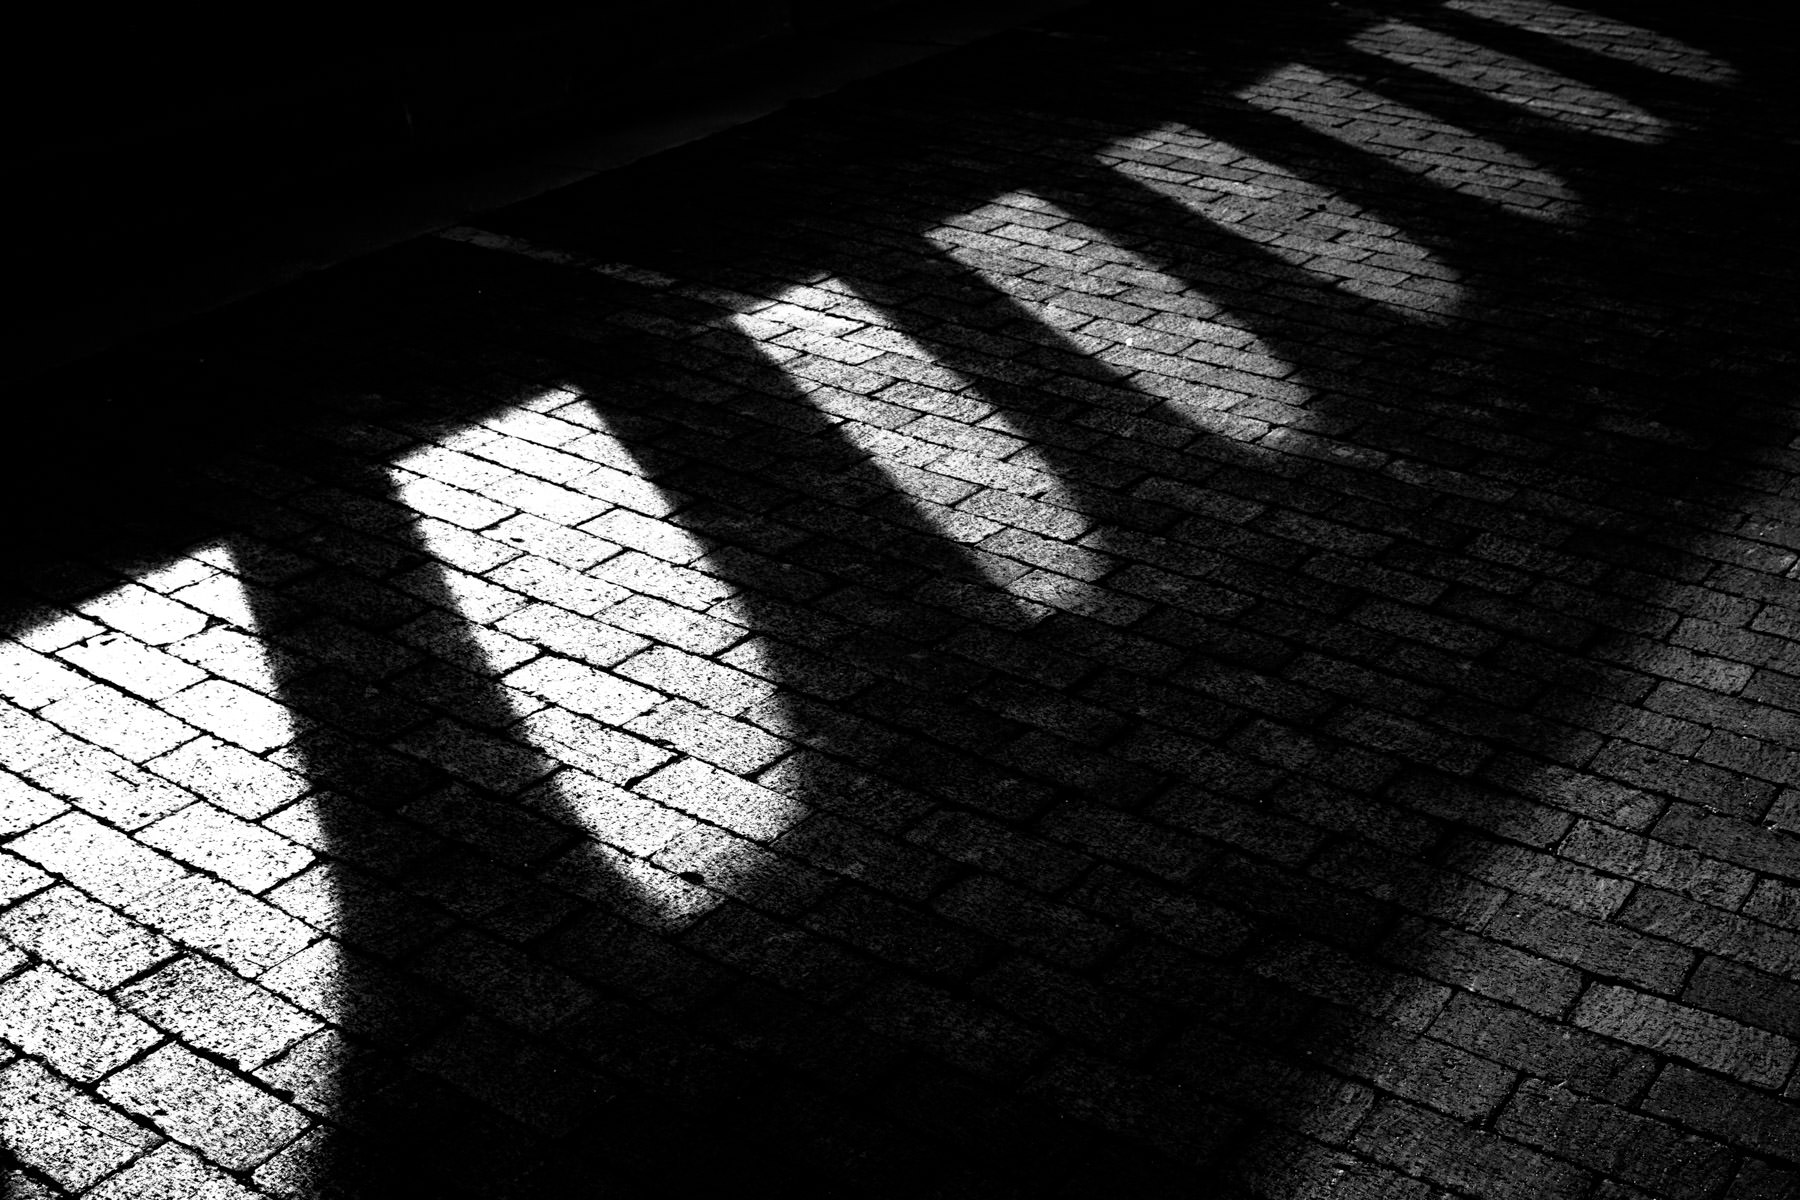 An old bridge's concrete railing casts a shadow on a brick street in Fort Worth, Texas.